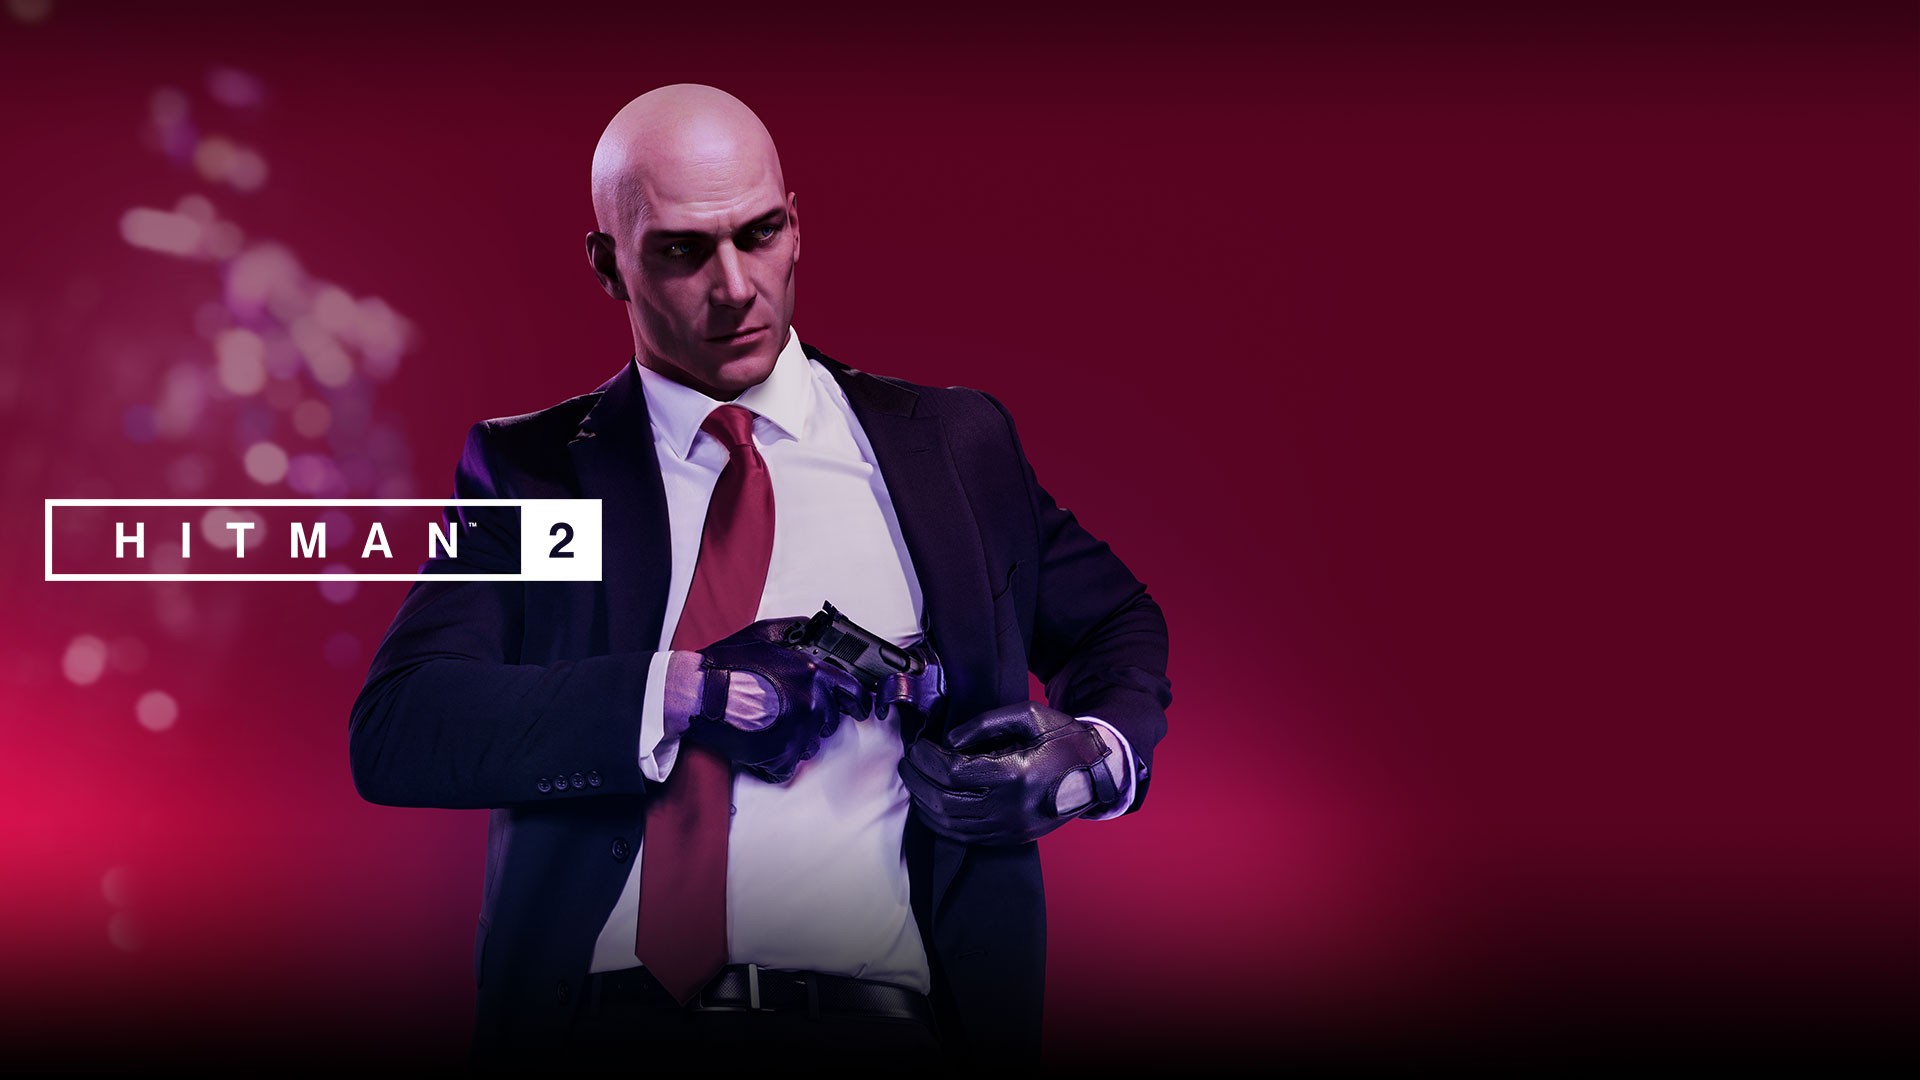 Hitman 2, Agent 47 pulls a pistol from a holster hidden in his jacket.